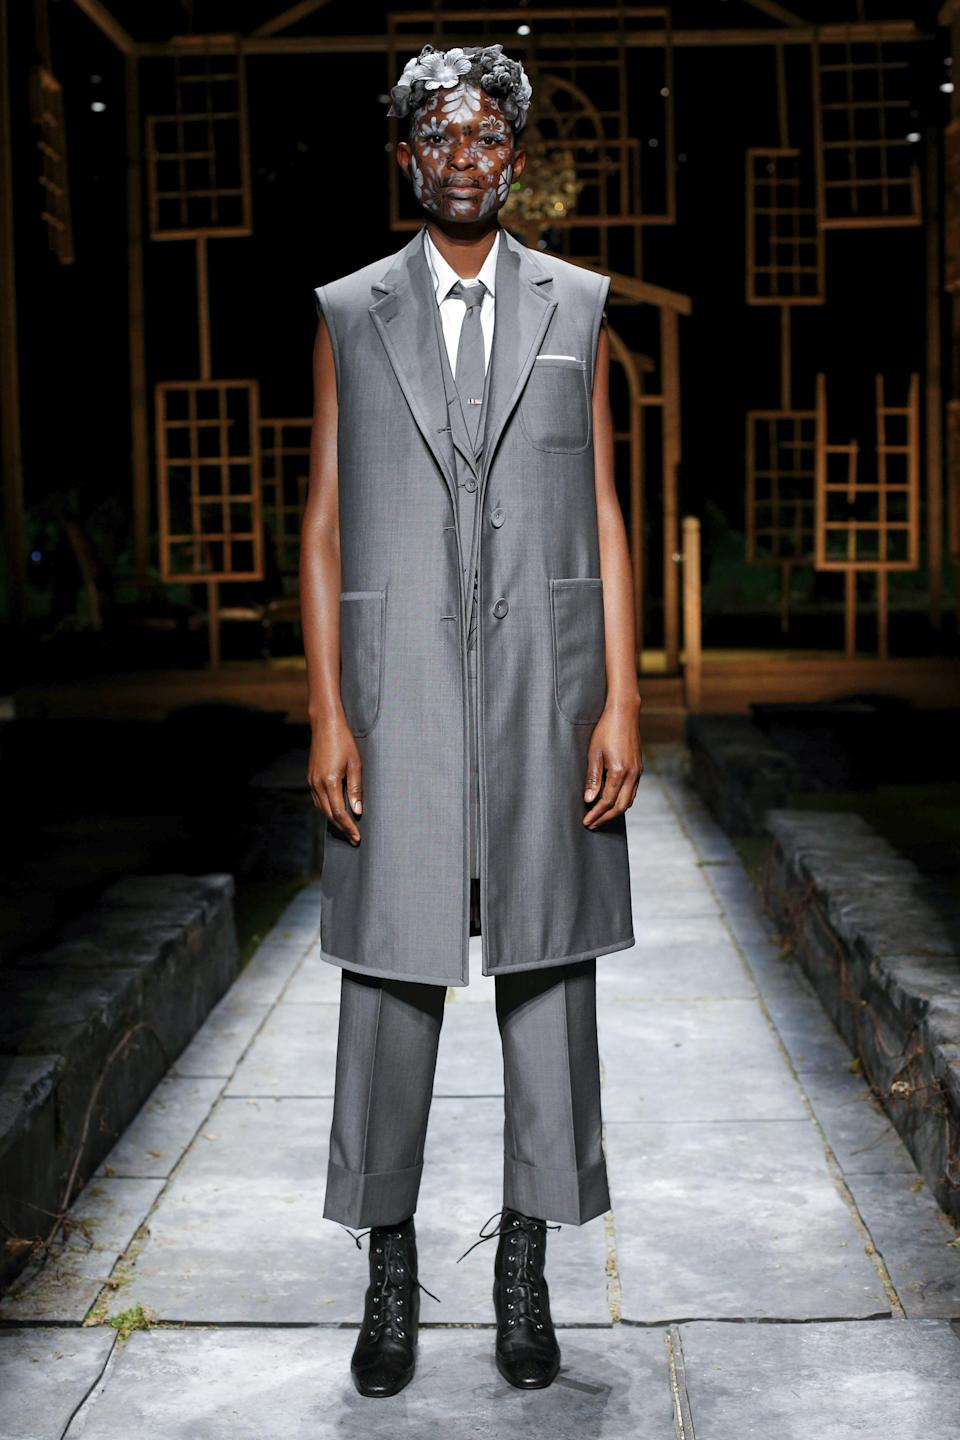 """<p>At this point, we're just waiting to see which Thom Browne look <a class=""""link rapid-noclick-resp"""" href=""""https://www.popsugar.com/Dan-Levy"""" rel=""""nofollow noopener"""" target=""""_blank"""" data-ylk=""""slk:Dan Levy"""">Dan Levy</a> is planning to wear next, and we'd be here for the photos of him in this sleeveless suit set from the spring 2022 runway. Based on the actor's well-documented history of wearing the brand's designs, we know he has a soft spot for clean lines, fluid dressing and sharp tailoring.</p>"""